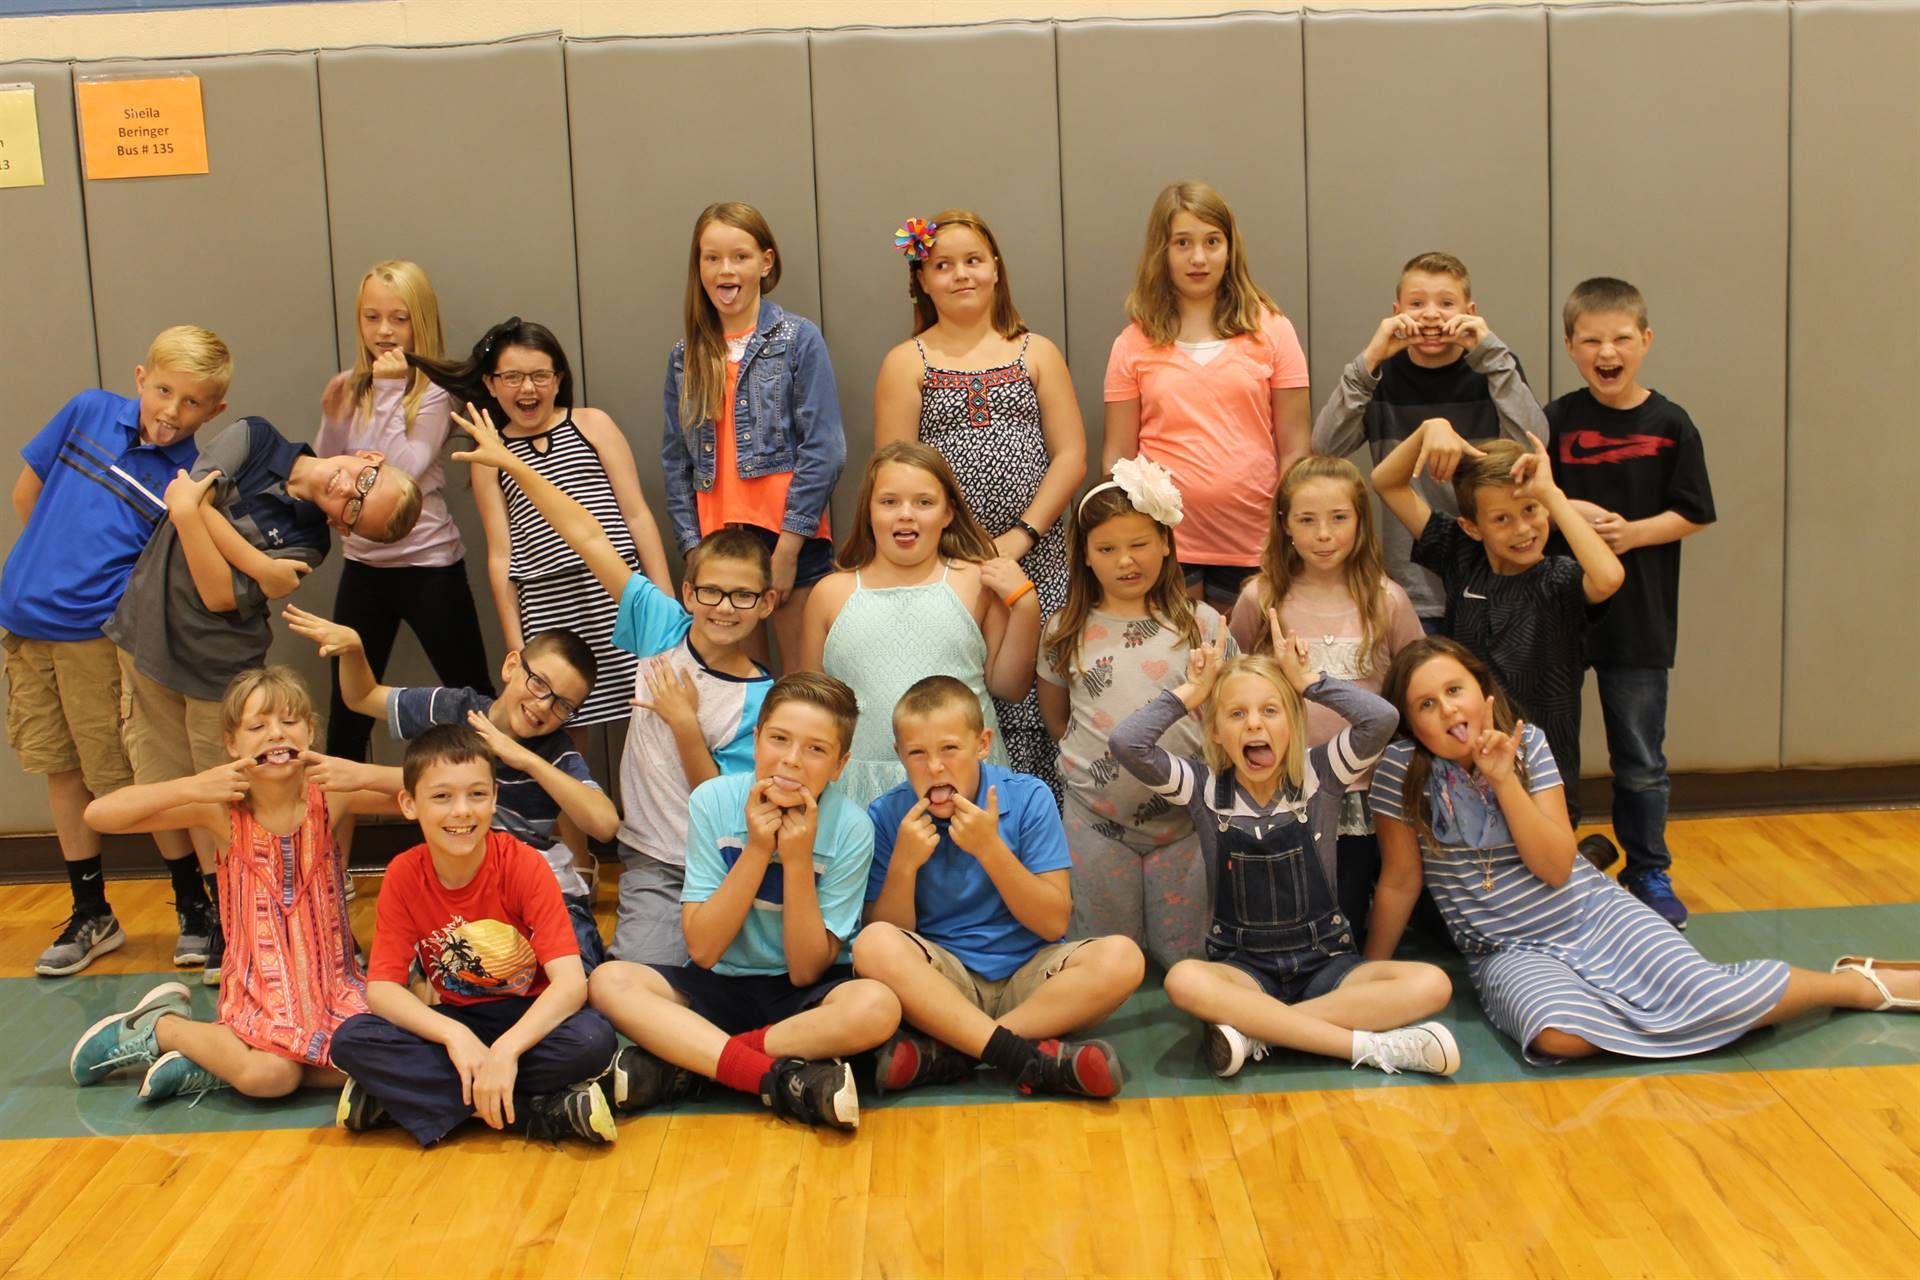 4th Grade Epworth Elementary Silly Picture